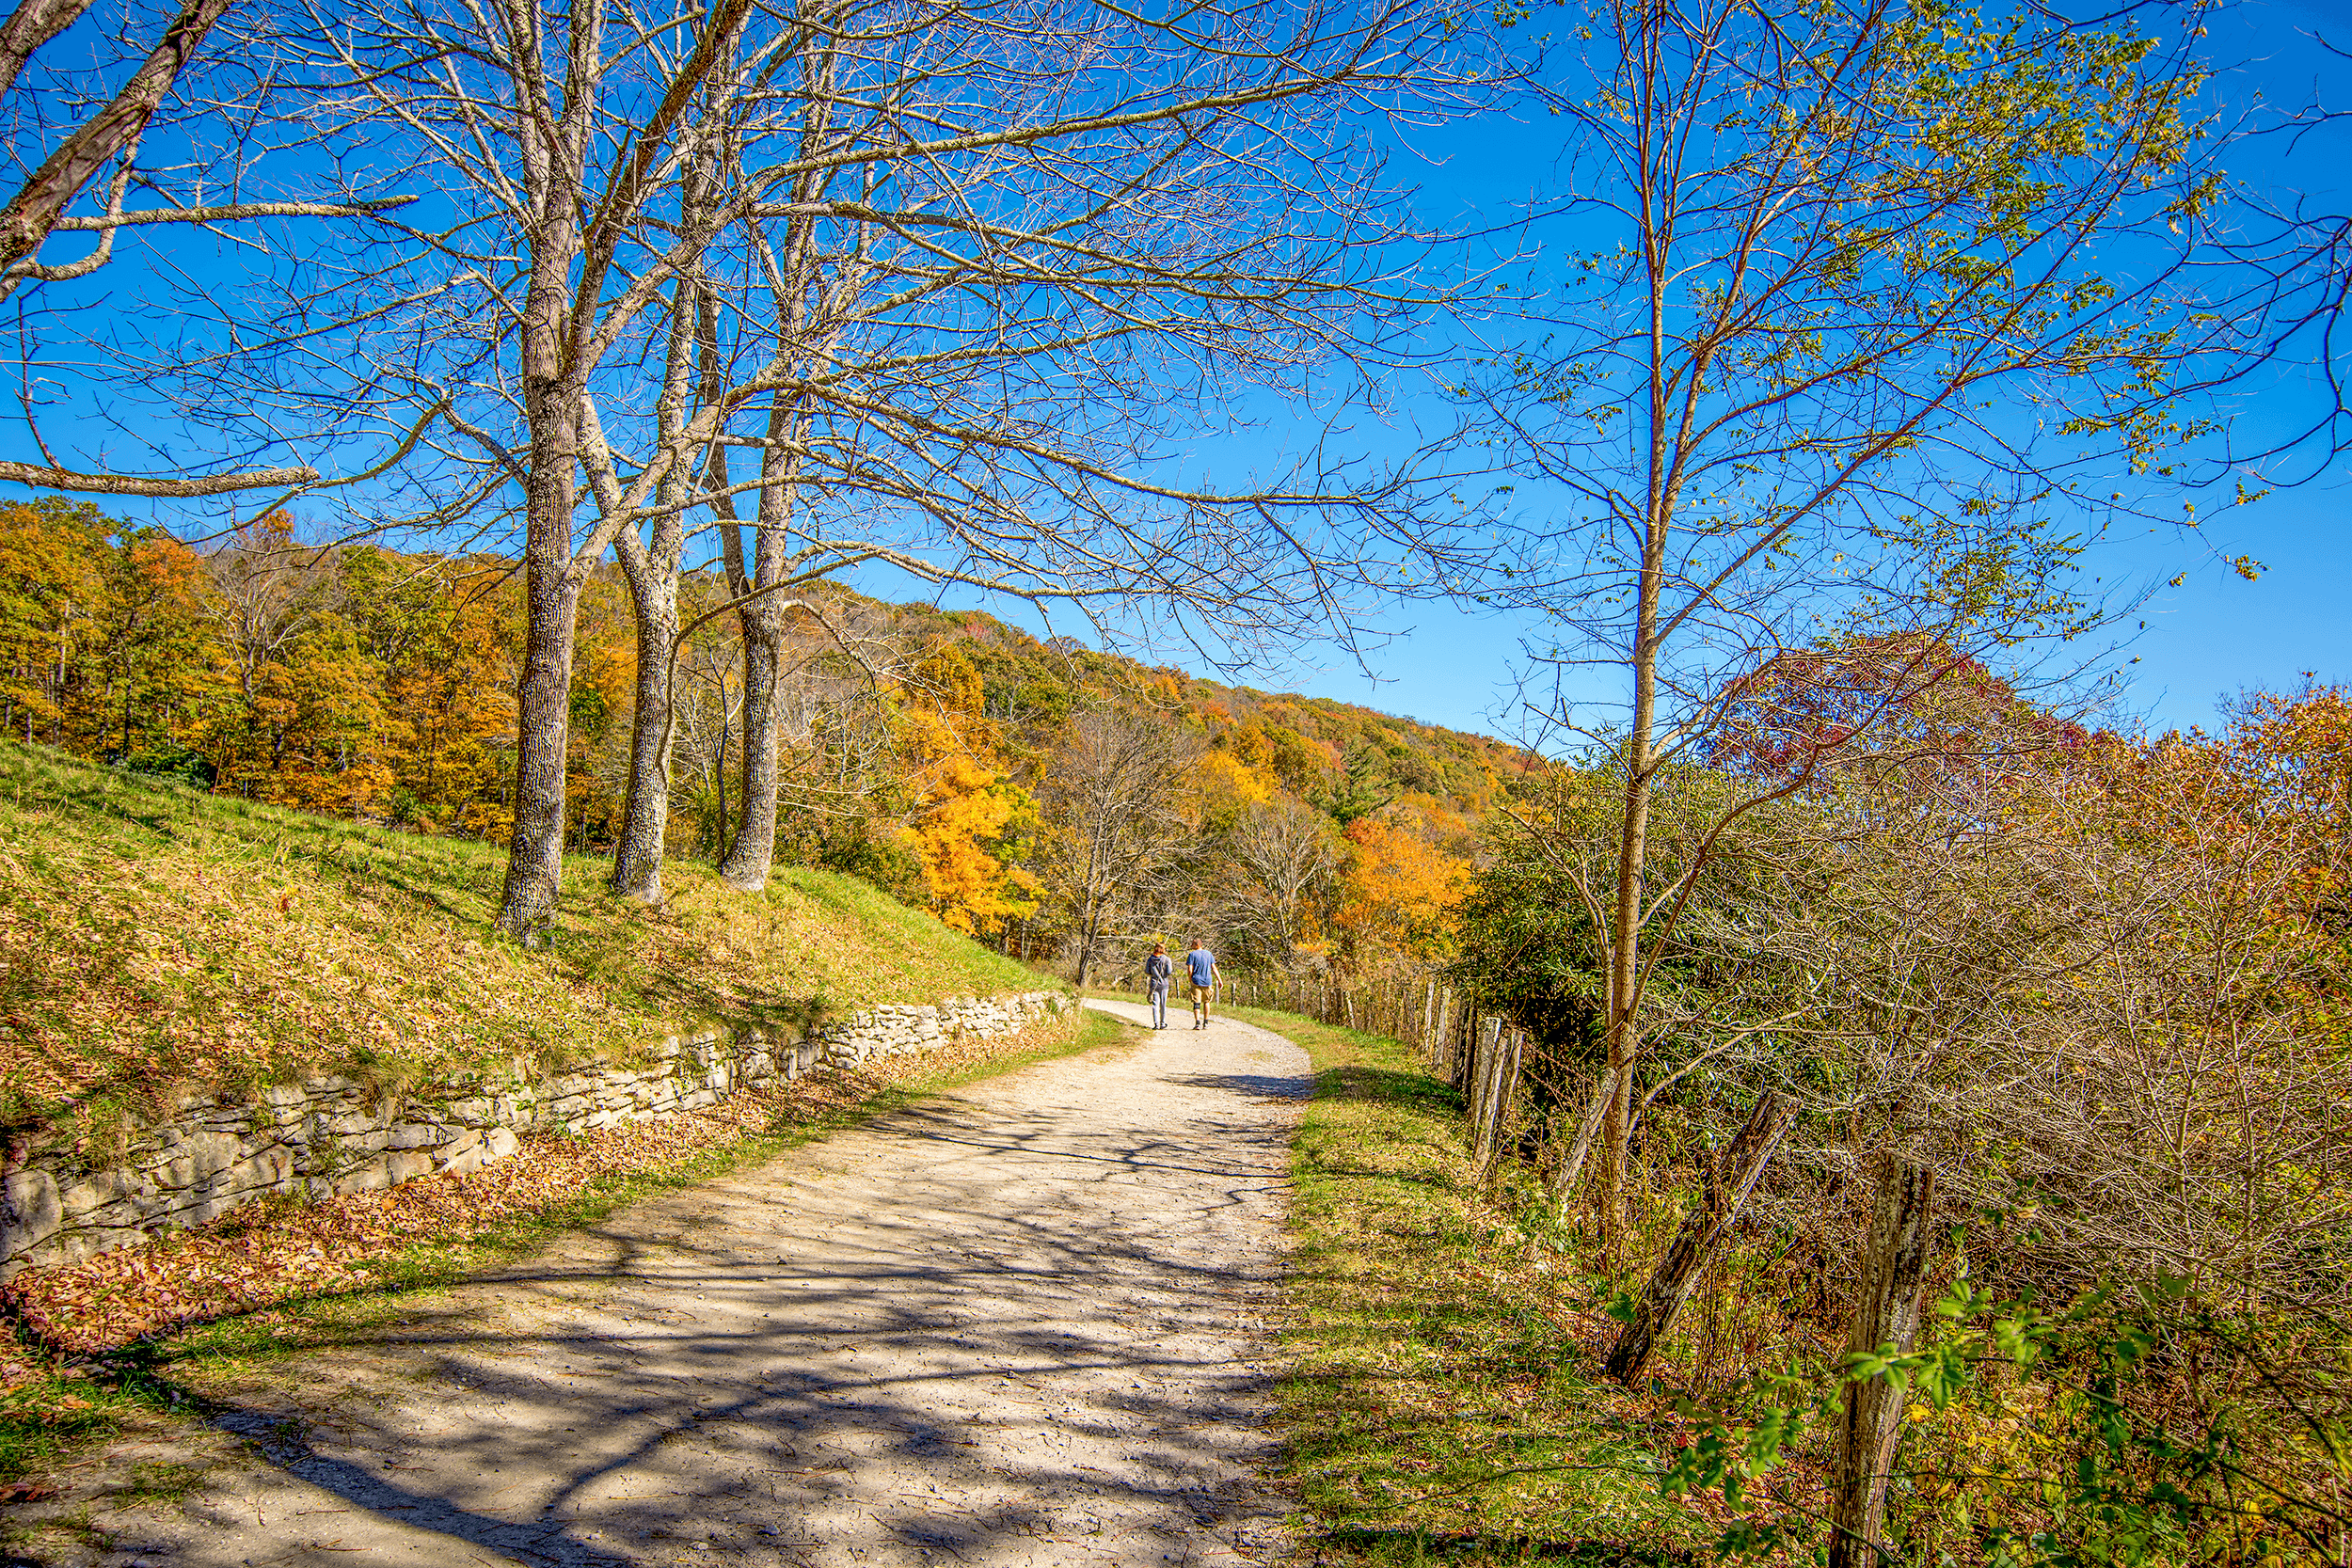 As the trails were made for horse-drawn carriages, the incline is usually very gentle and the hike very enjoyable. The trails vary in length. The trail from the Flat Top Manor to Bass Lake along Deer Park Road is roughly 1.6 miles (2.6 km) long.